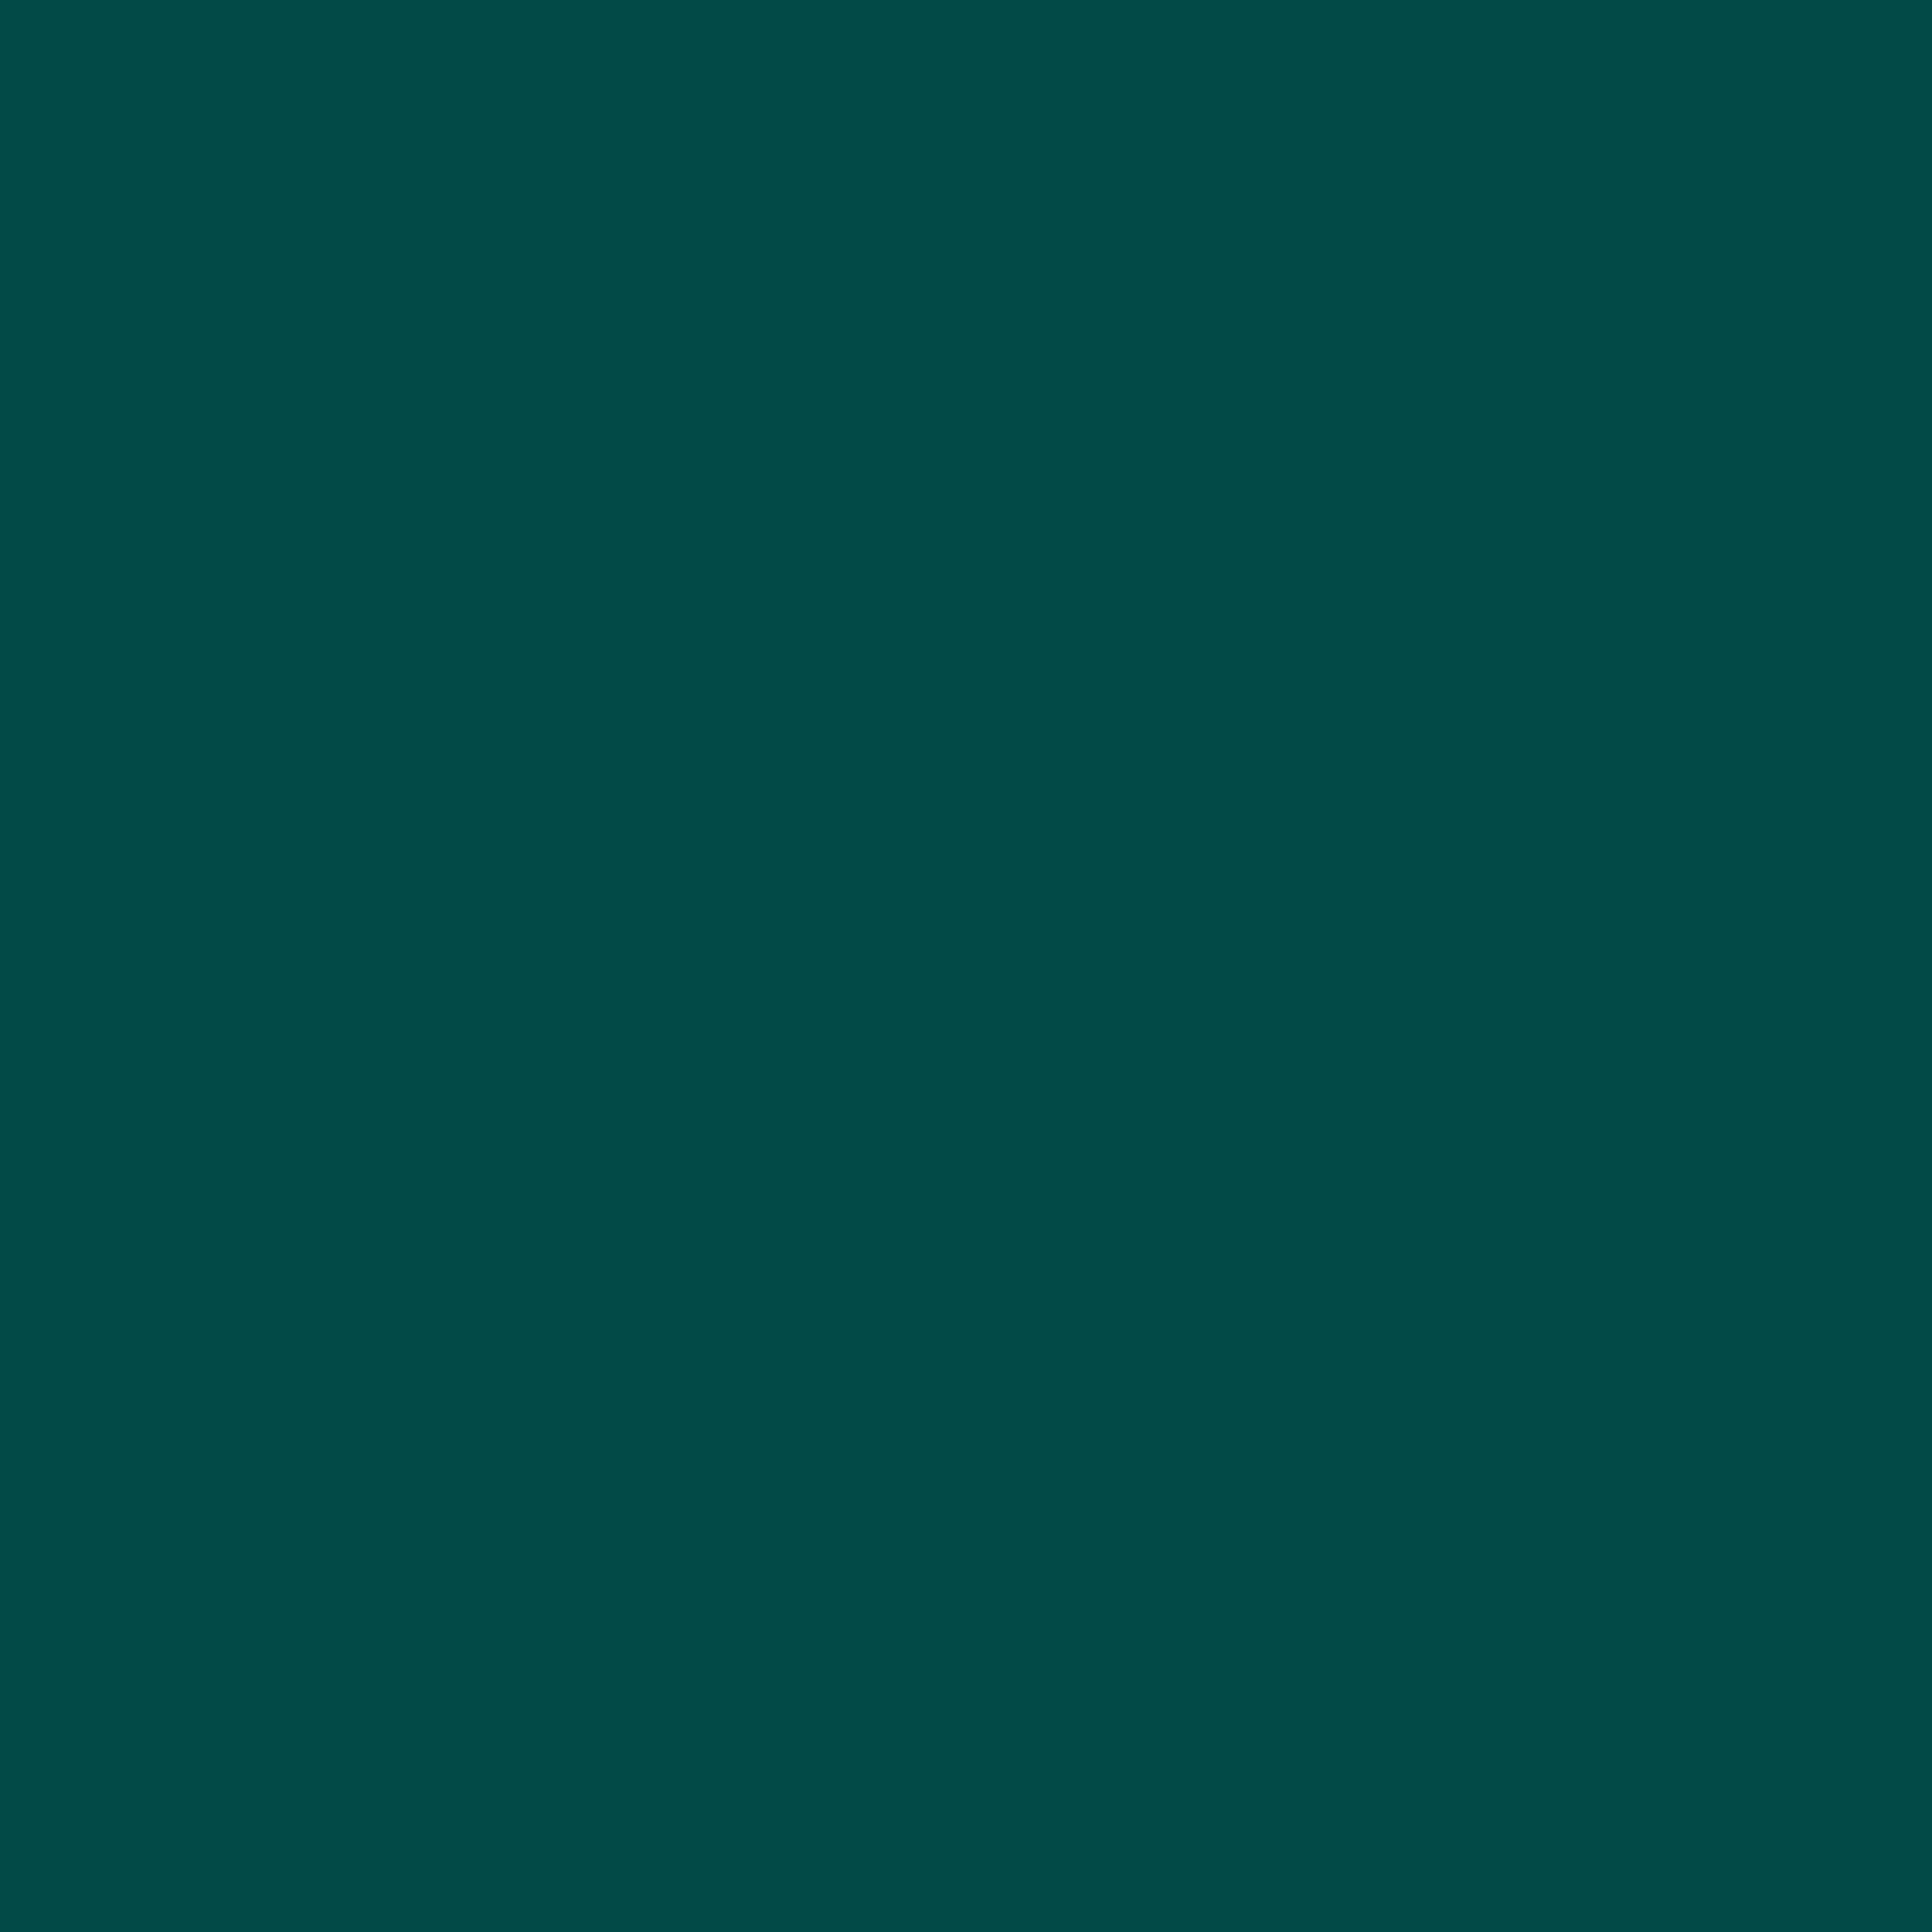 3600x3600 Deep Jungle Green Solid Color Background